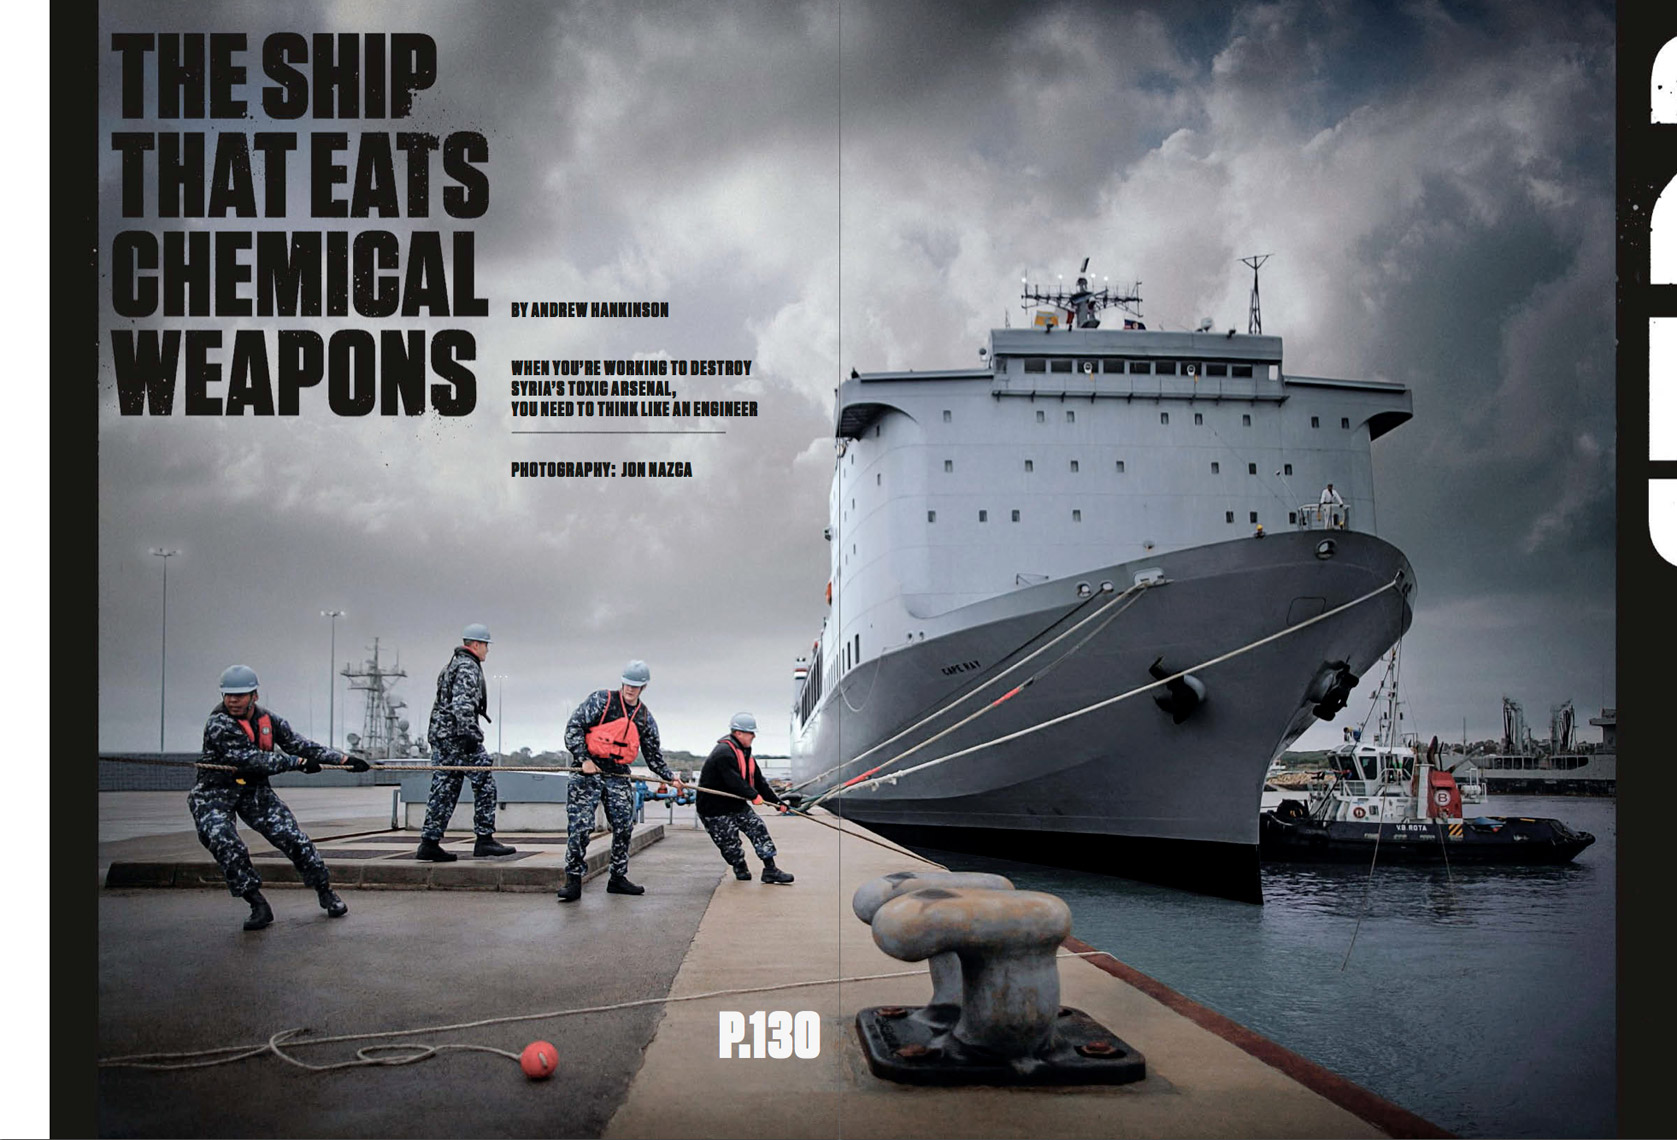 WIRED_UK_July2014_The_Ship_That_Eats_Chemical_Weapons_Feature_SPREAD1